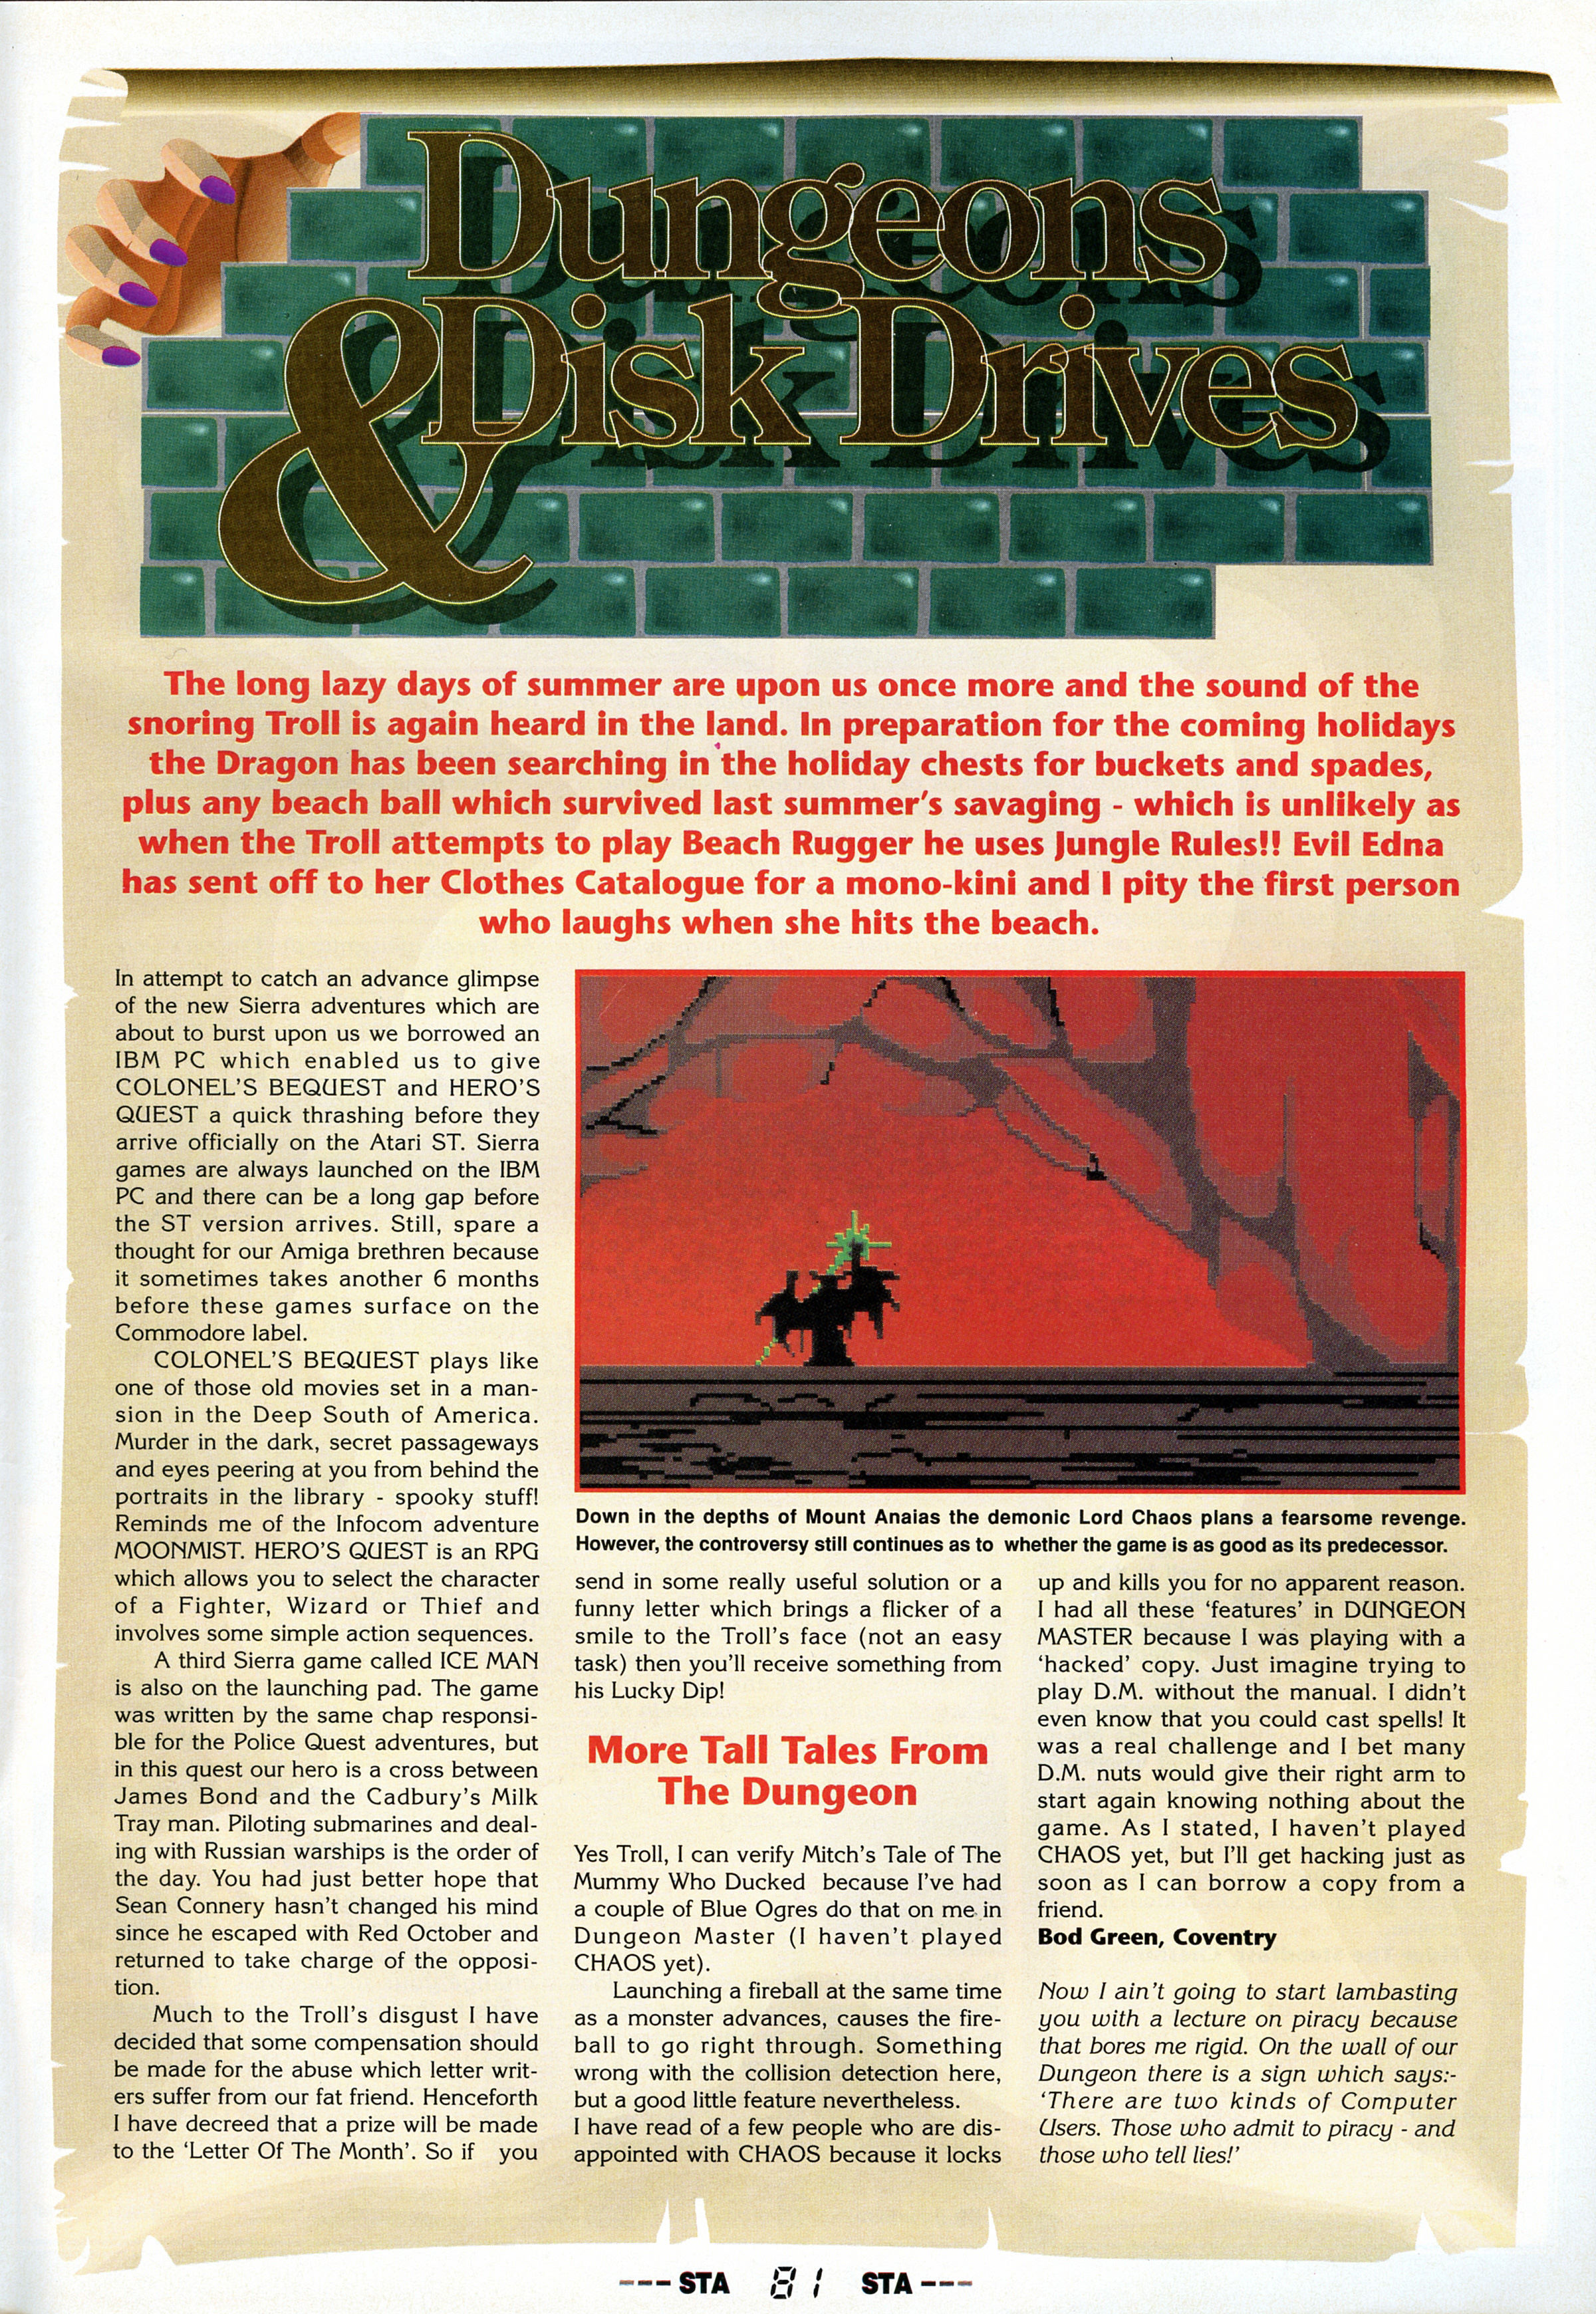 Dungeon Master Hints published in British magazine 'ST Action', Issue #28 August 1990, Page 81